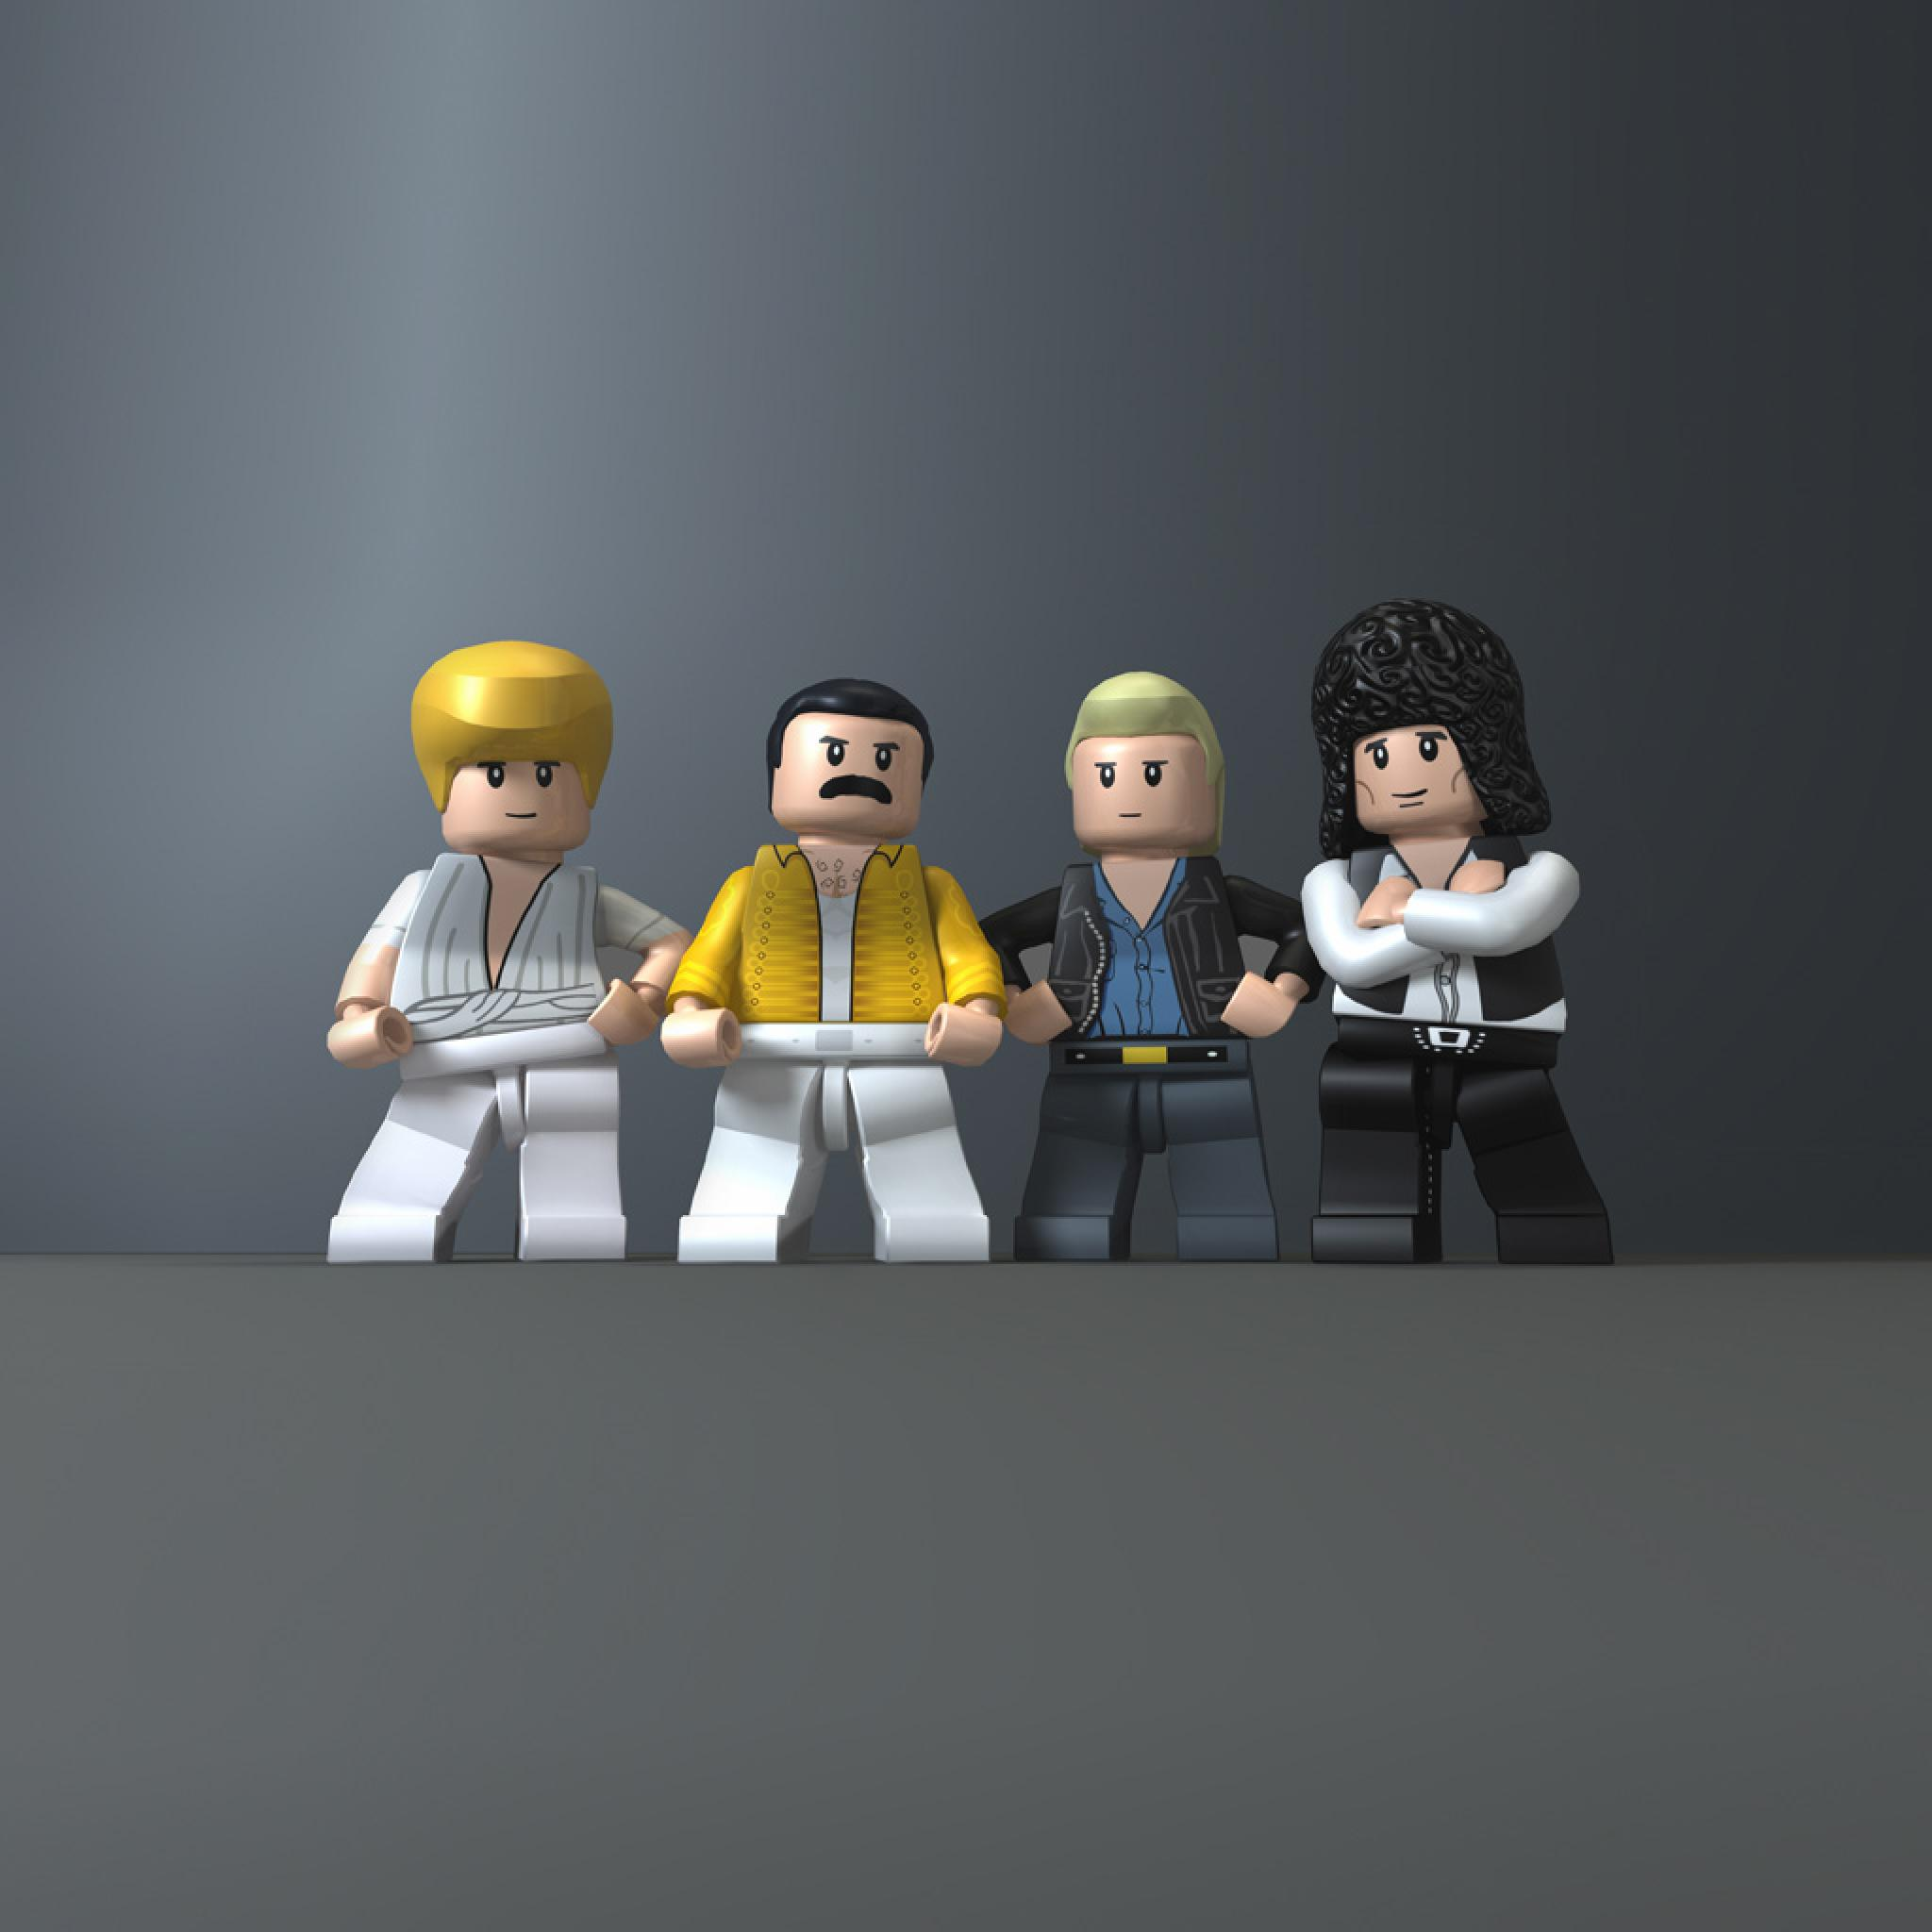 Wallpaper Iphone 3d Touch Fun Humor Lego Queen Band Ipad Iphone Hd Wallpaper Free